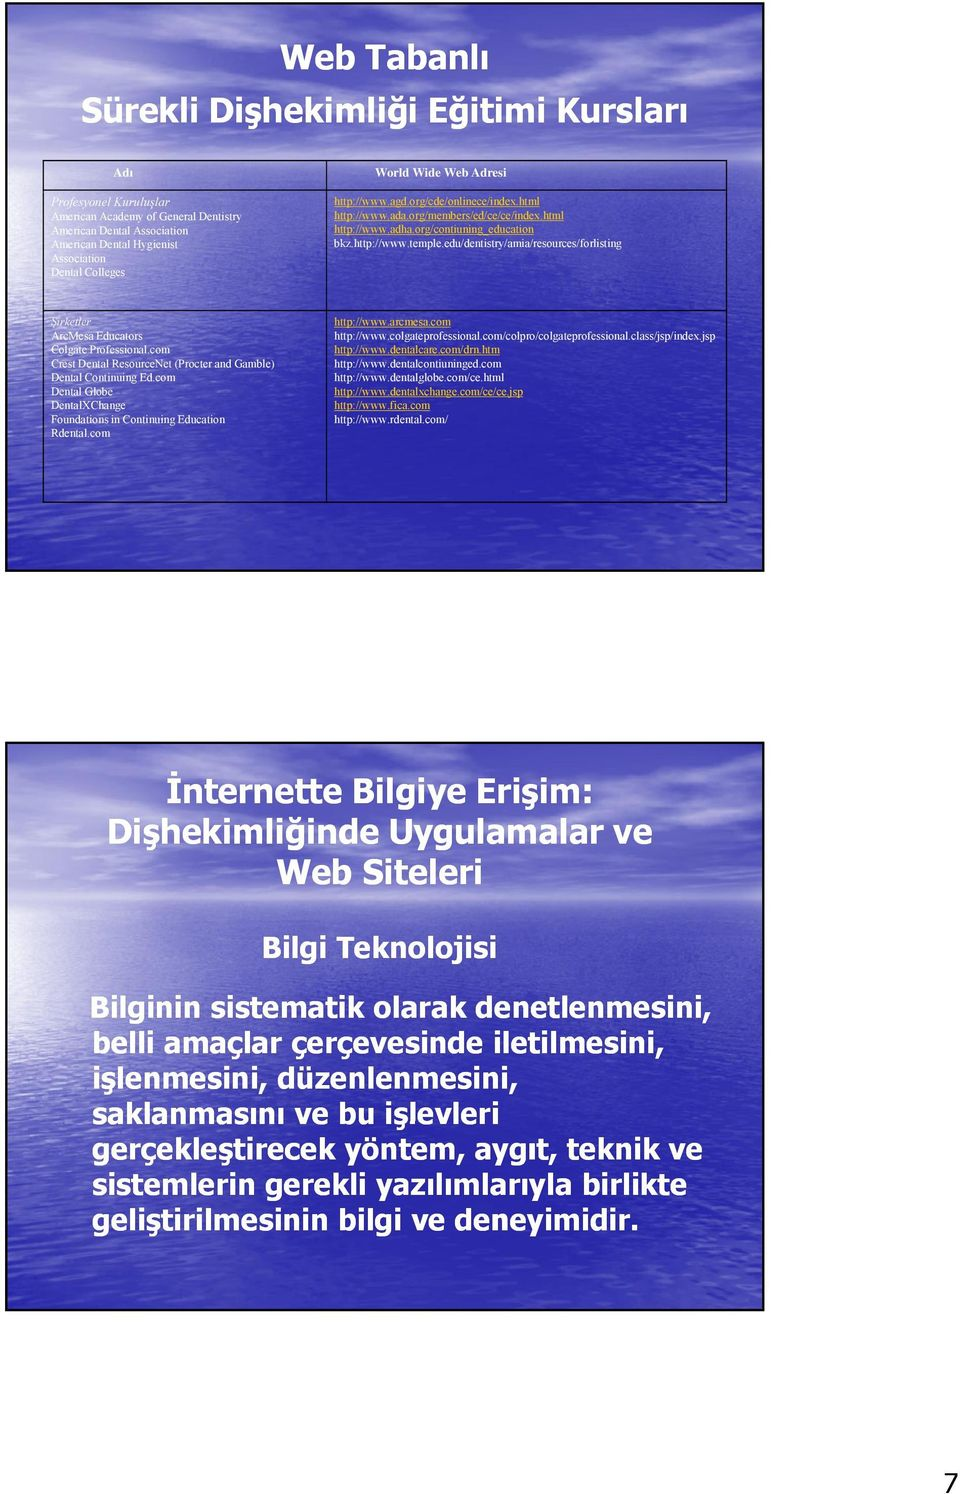 edu/dentistry/amia/resources/forlisting Şirketler ArcMesa Educators Colgate Professional.com Crest Dental ResourceNet (Procter and Gamble) Dental Continuing Ed.